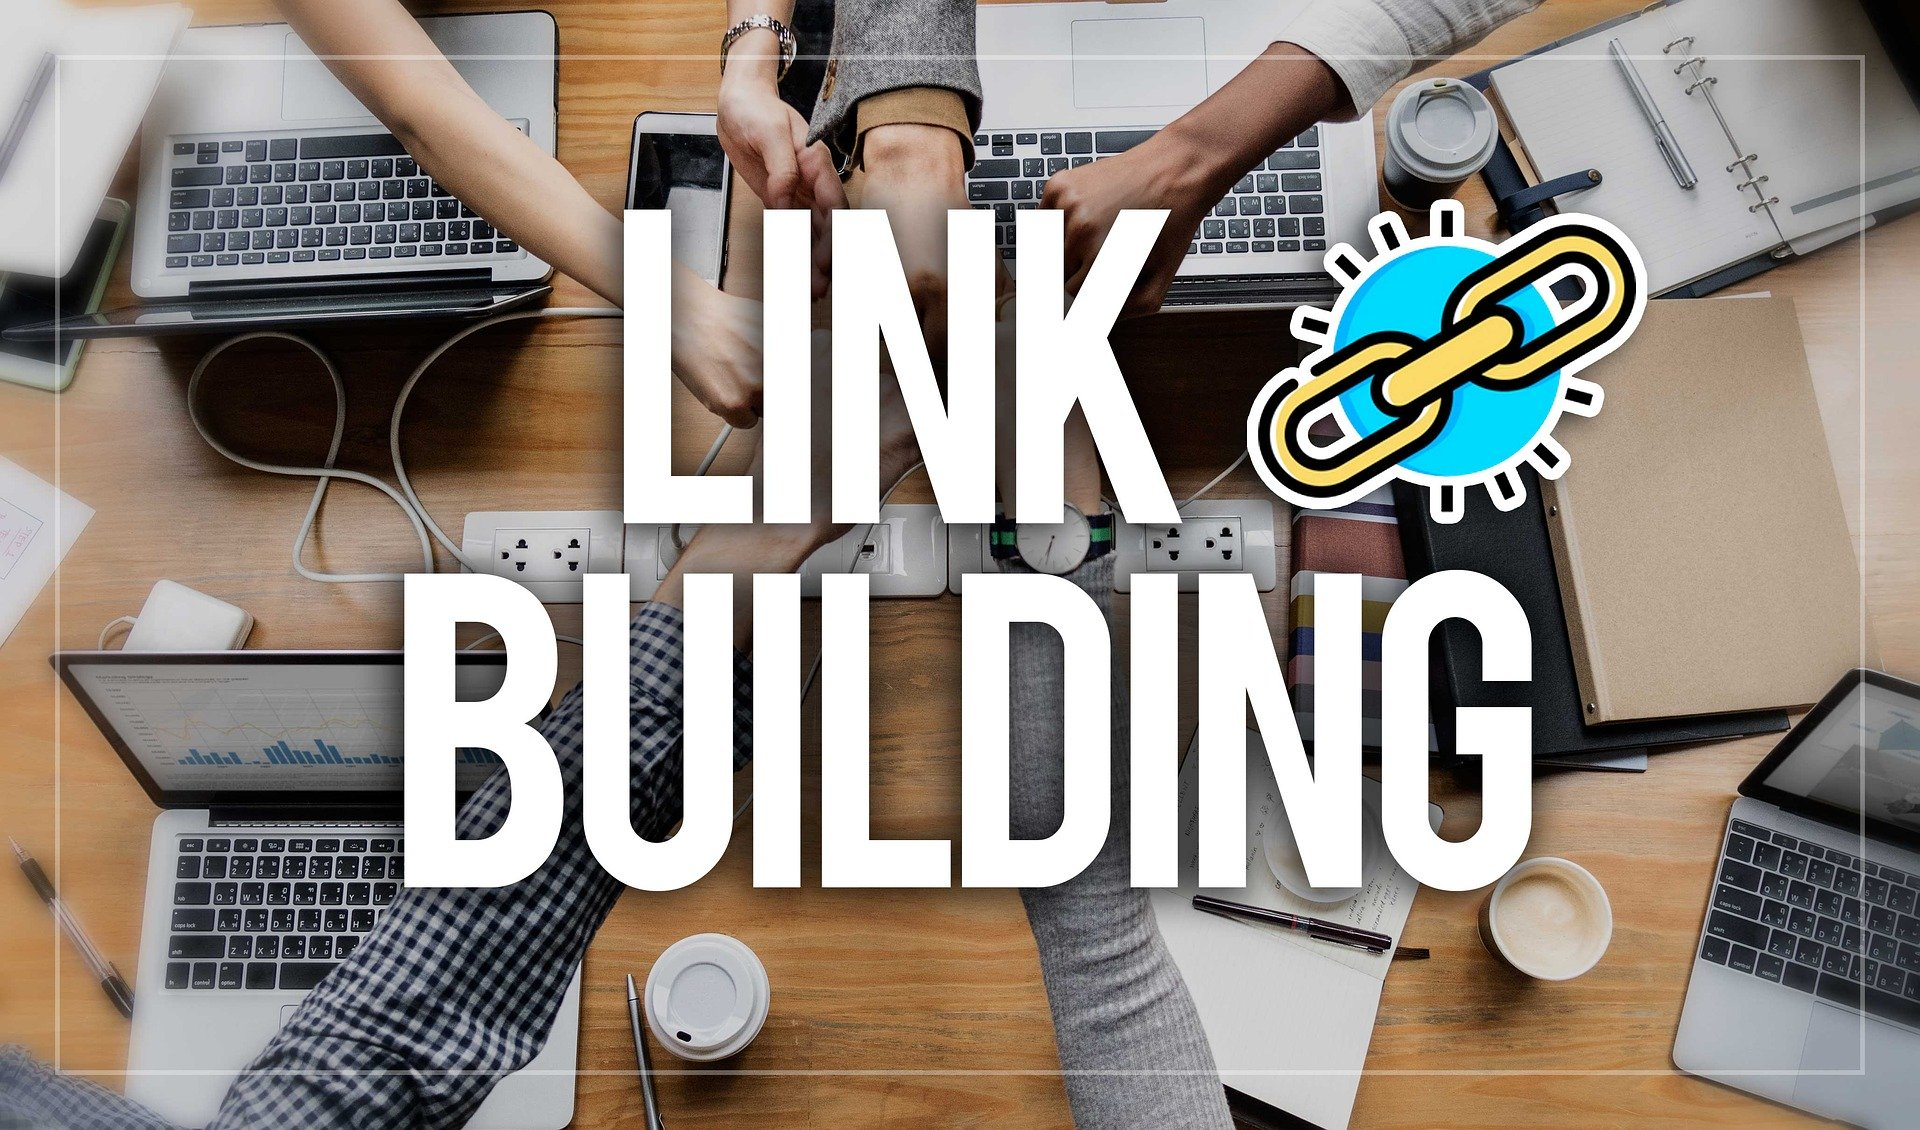 How to start link building for a small business website?